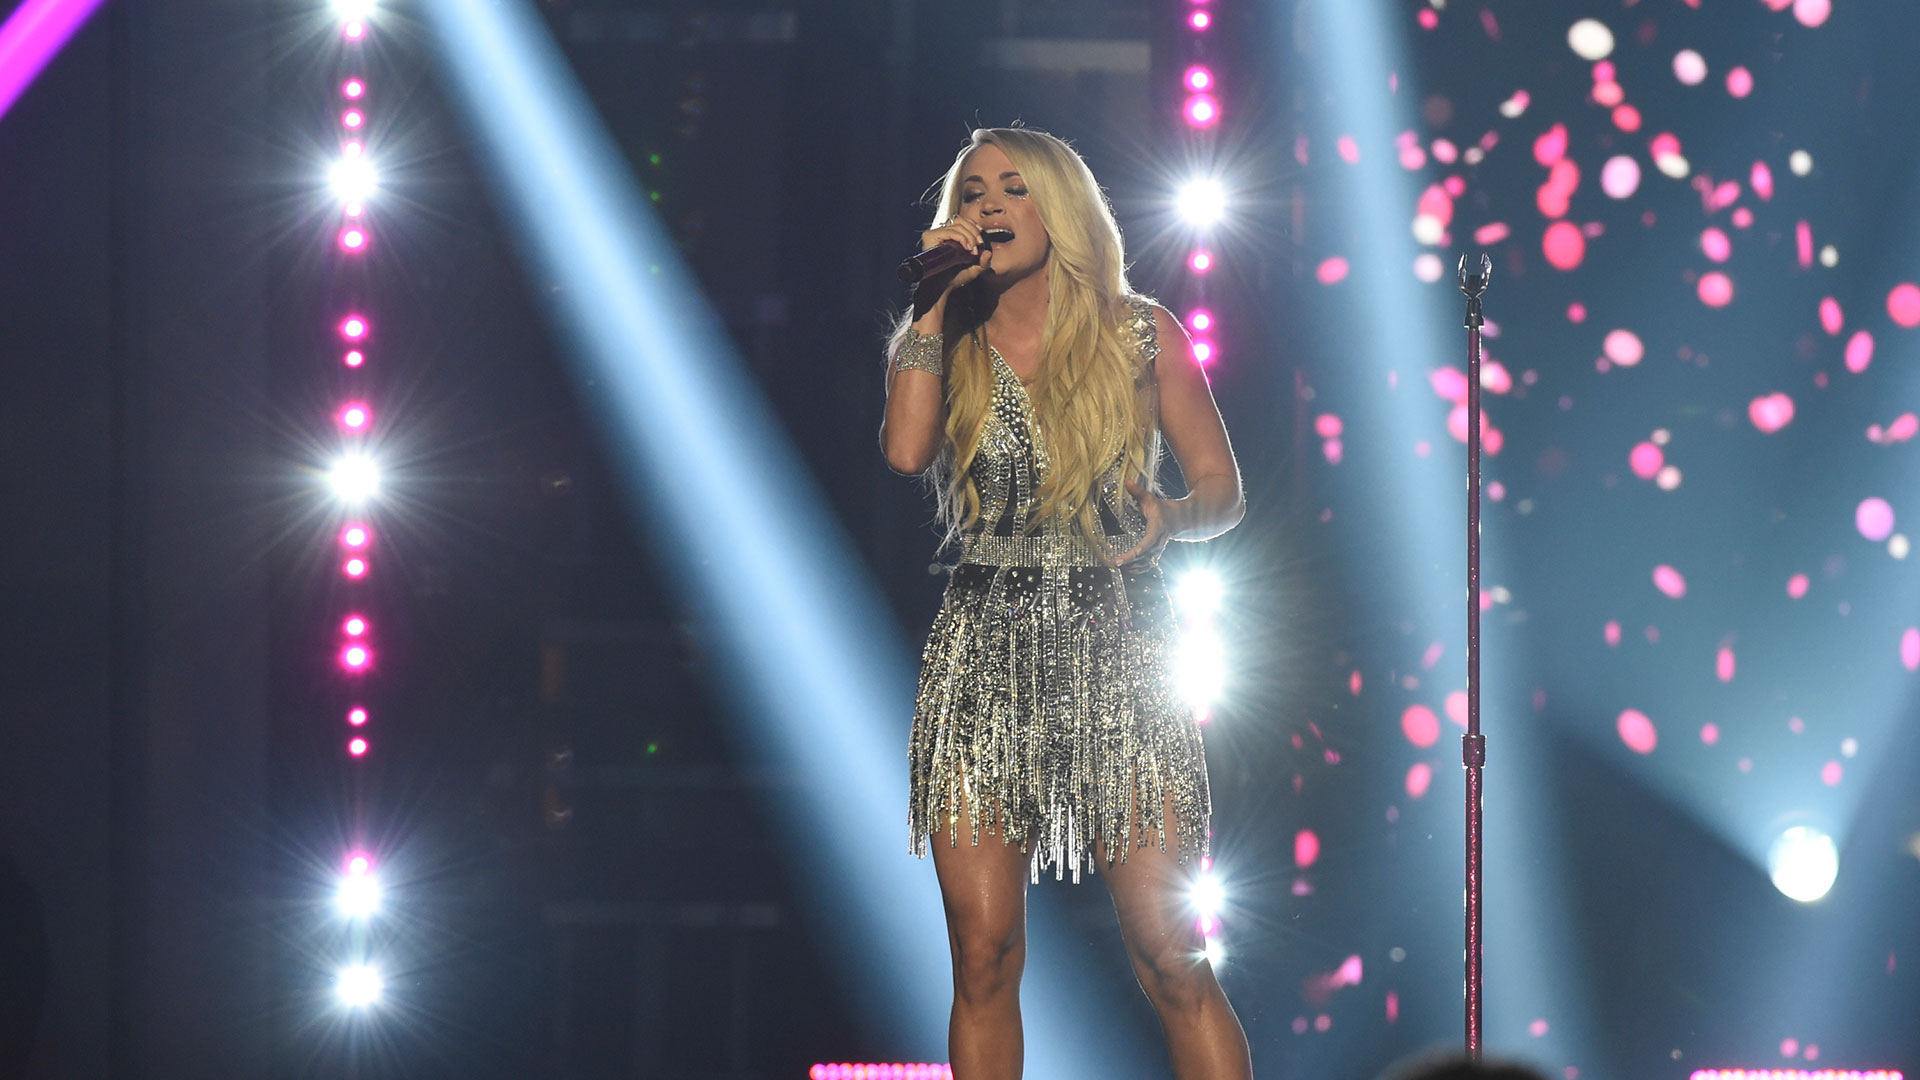 Sparkling in a silver mini-dress, Carrie Underwood performs her brand-new single,